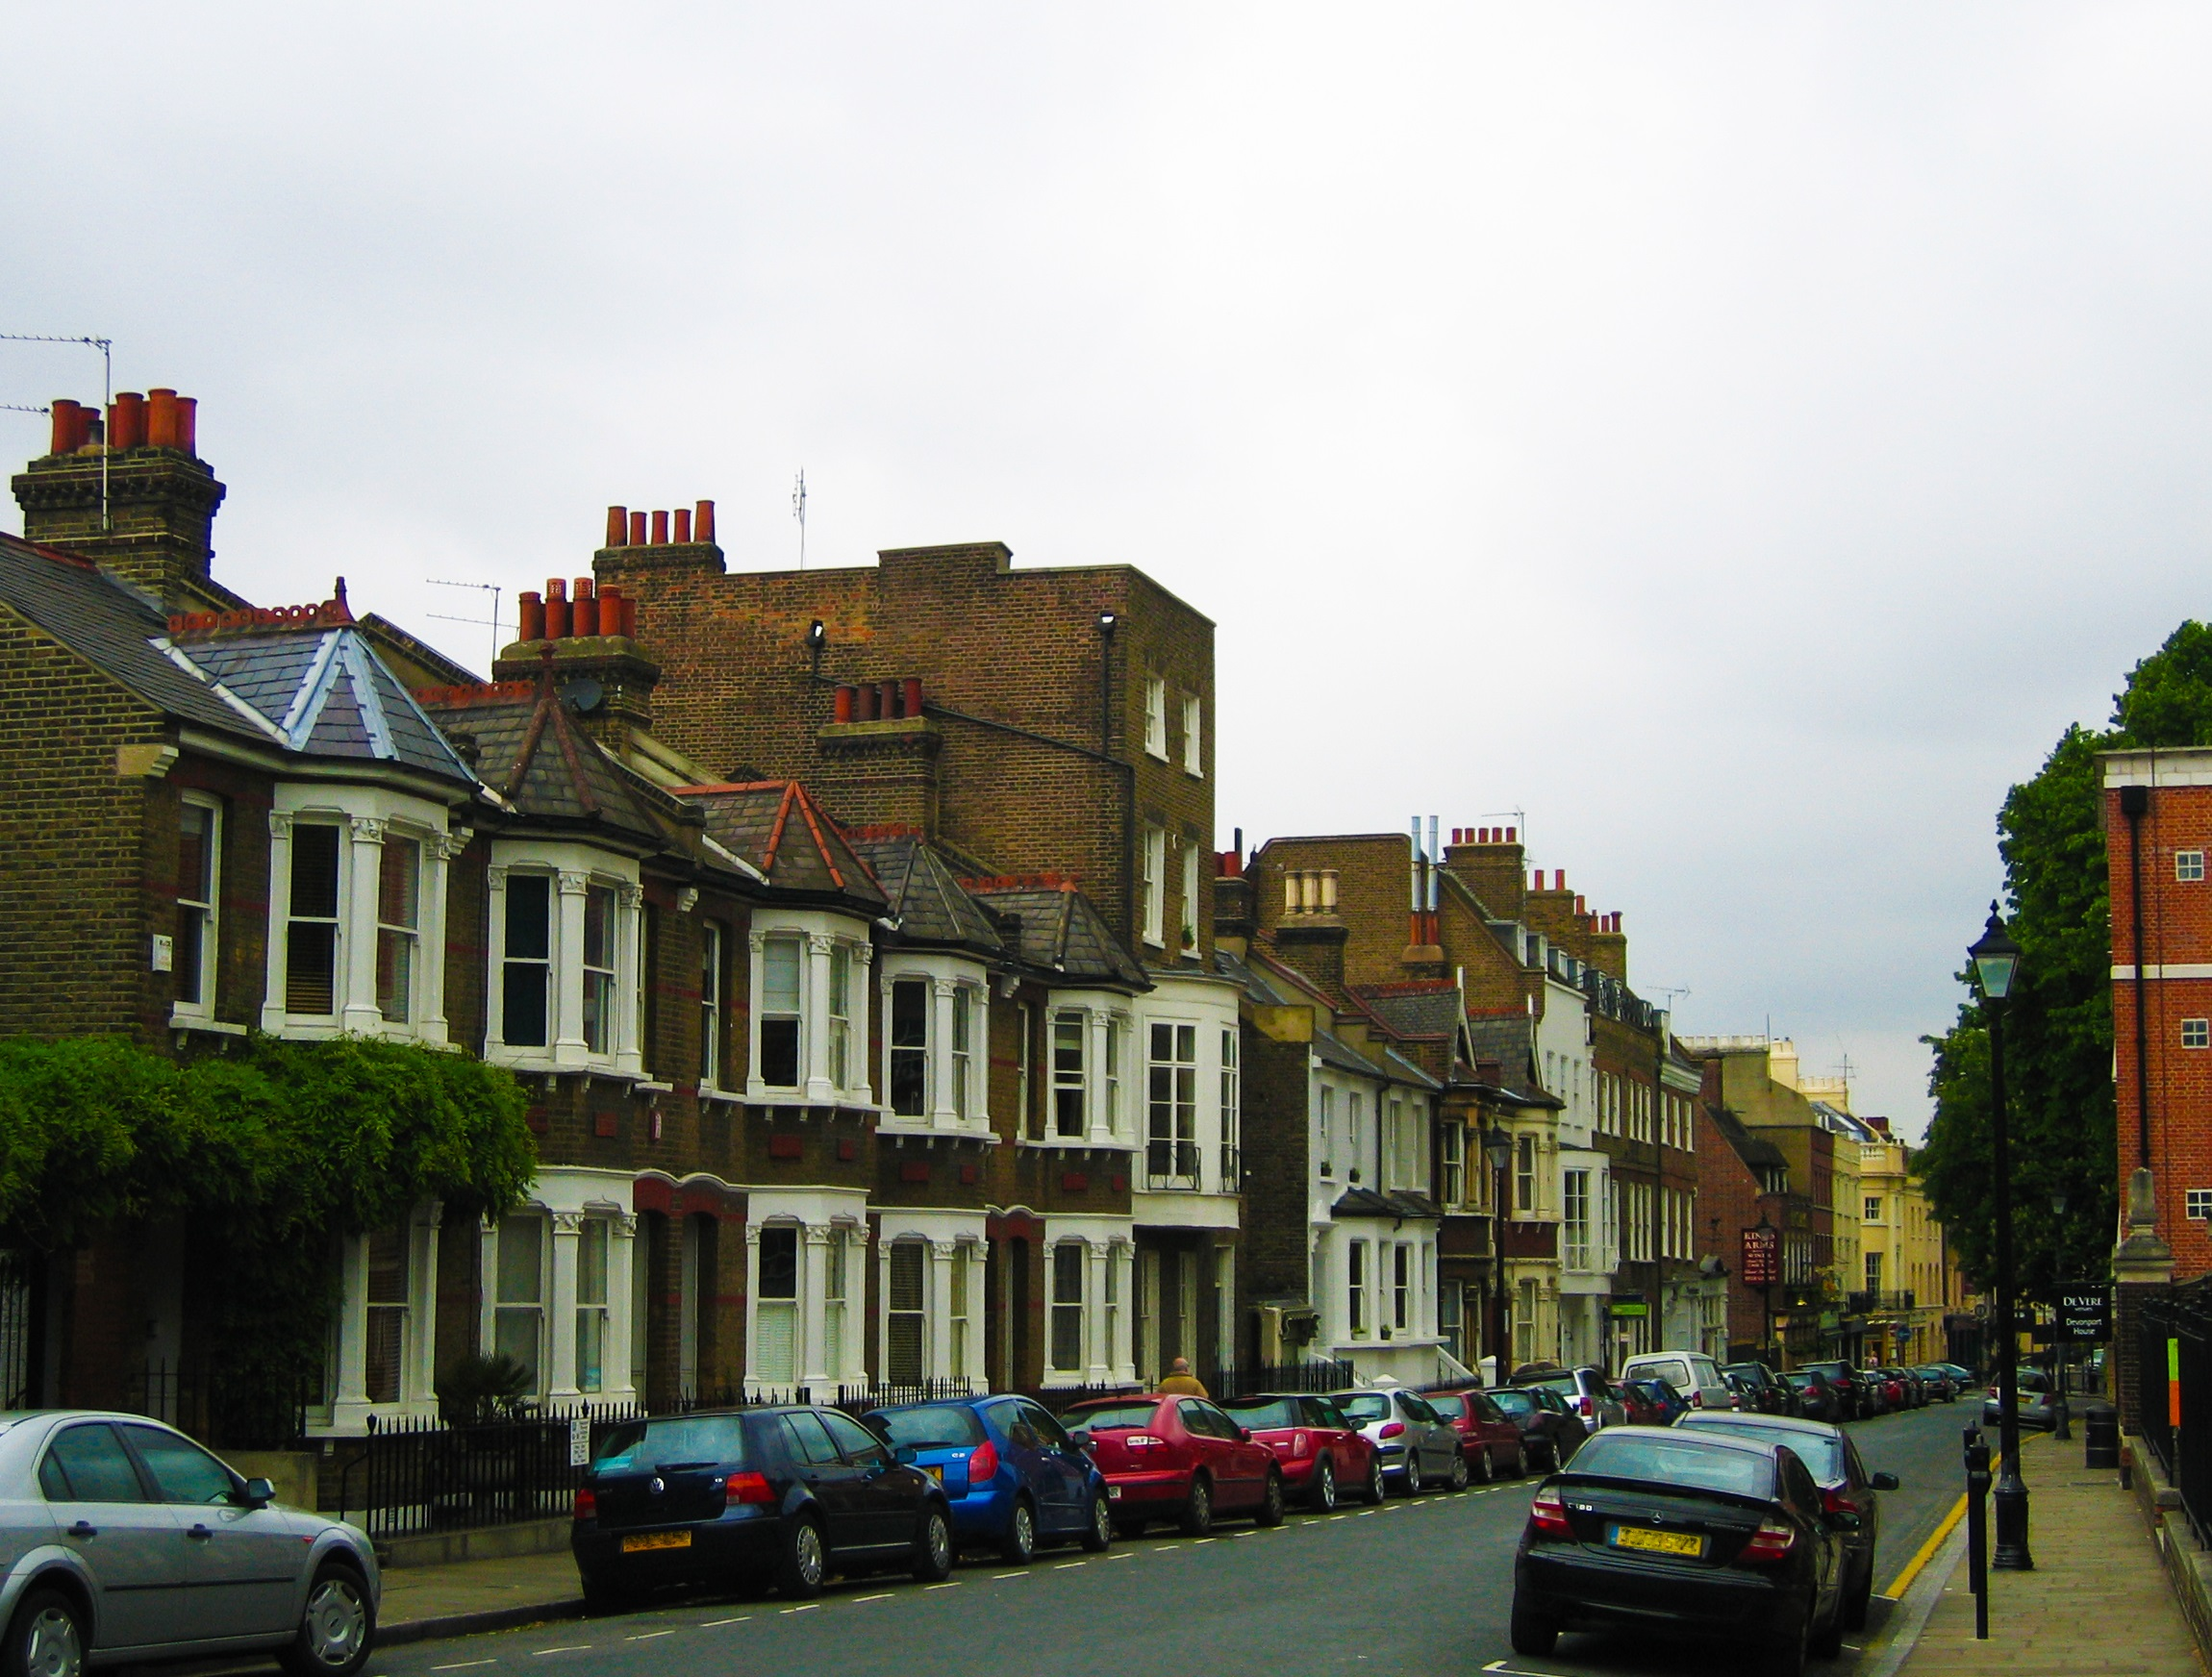 Terraced houses in London by Ayla87